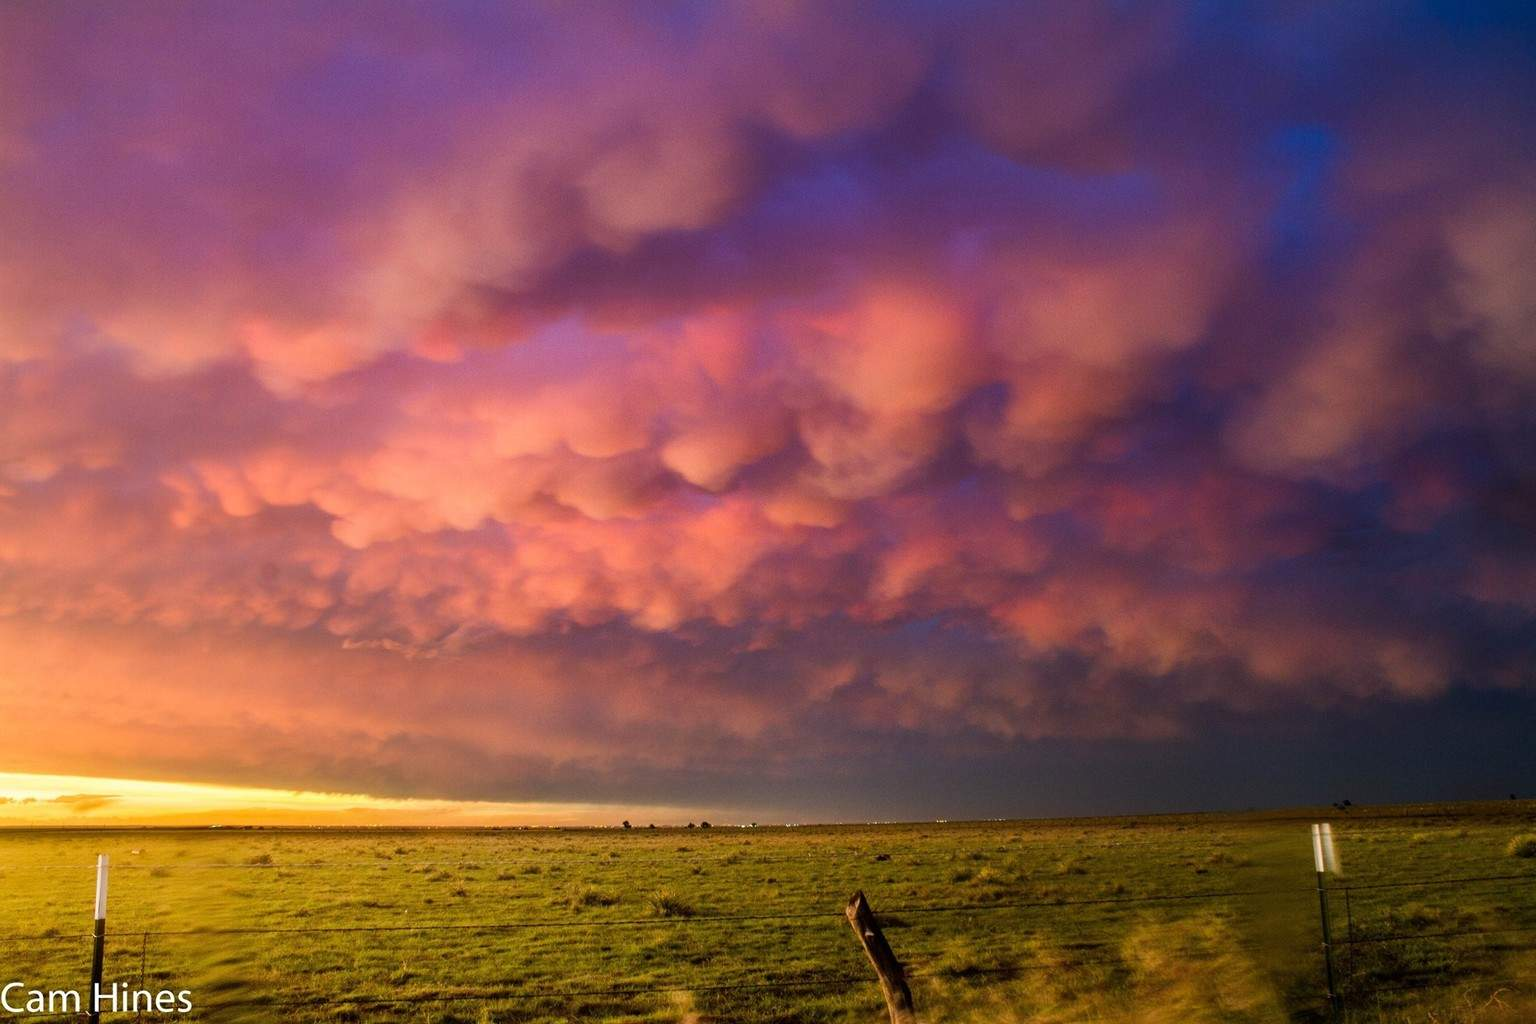 May 30 in Dora, New Mexico. We never saw the tornado this storm produced but we were still treated to this awesome Mammatus sunset!